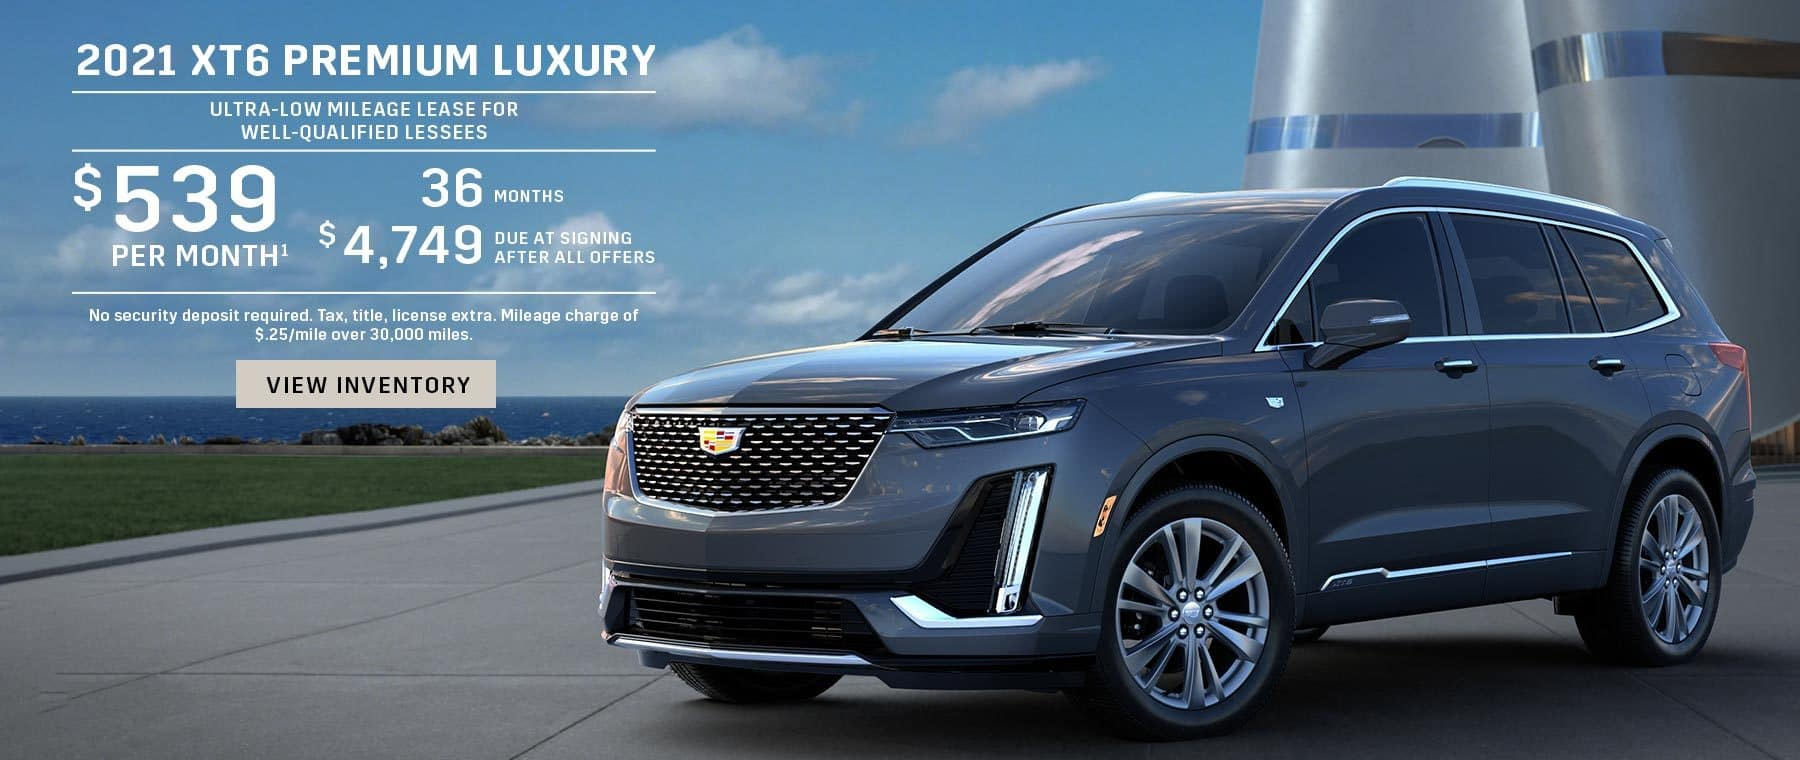 2021 XT6 Premium Luxury. Ultra-low mileage lease for well-qualified lessees. $539 per month 36 months $4,749 due at signing after all offers. No security deposit required. Tax, title, license extra. Mileage charge of $.25/mile over 30,000 miles.